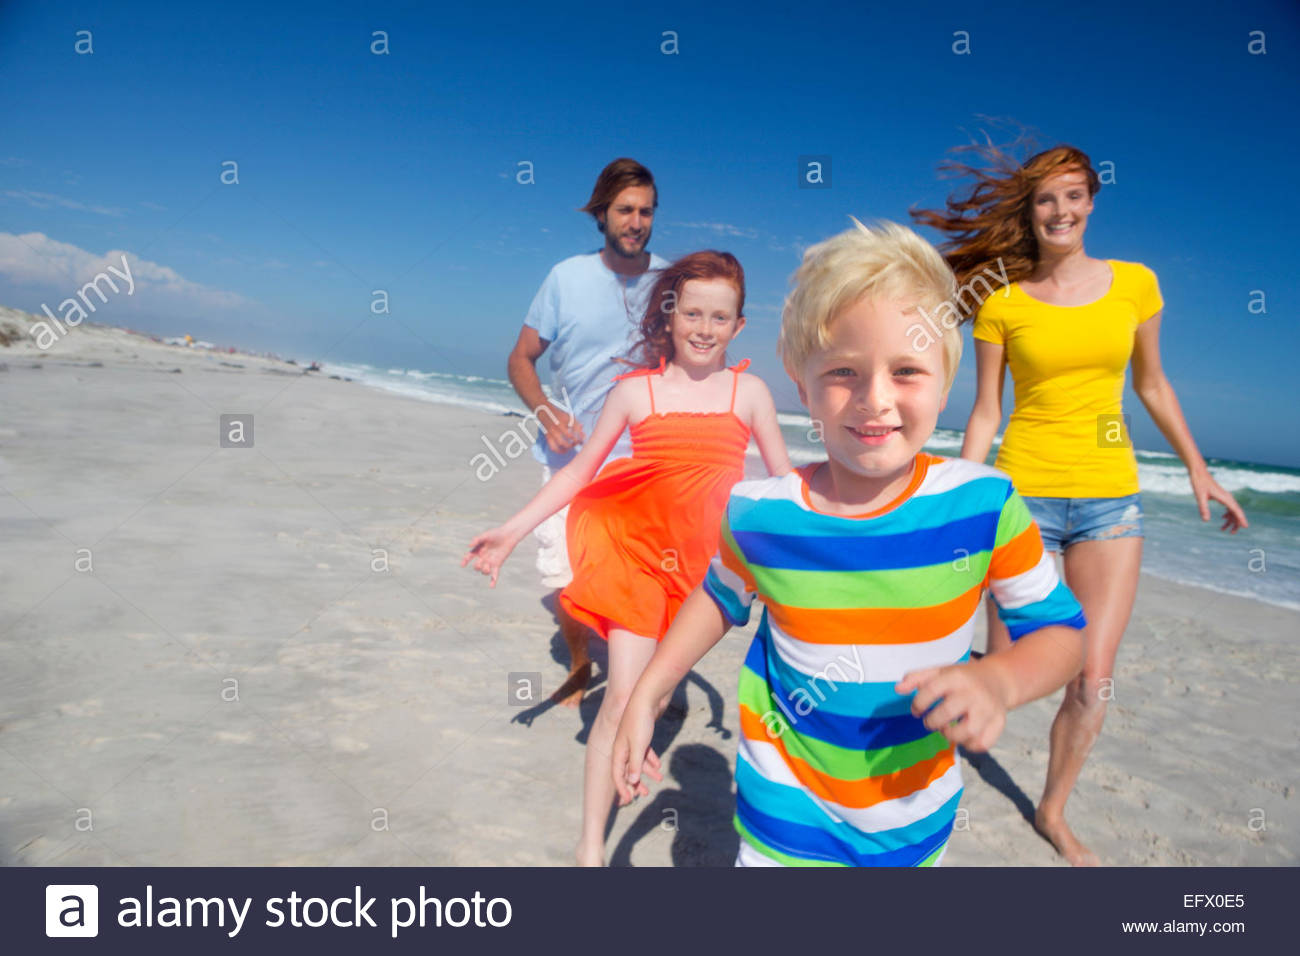 Happy family running toward camera, on sunny beach - Stock Image